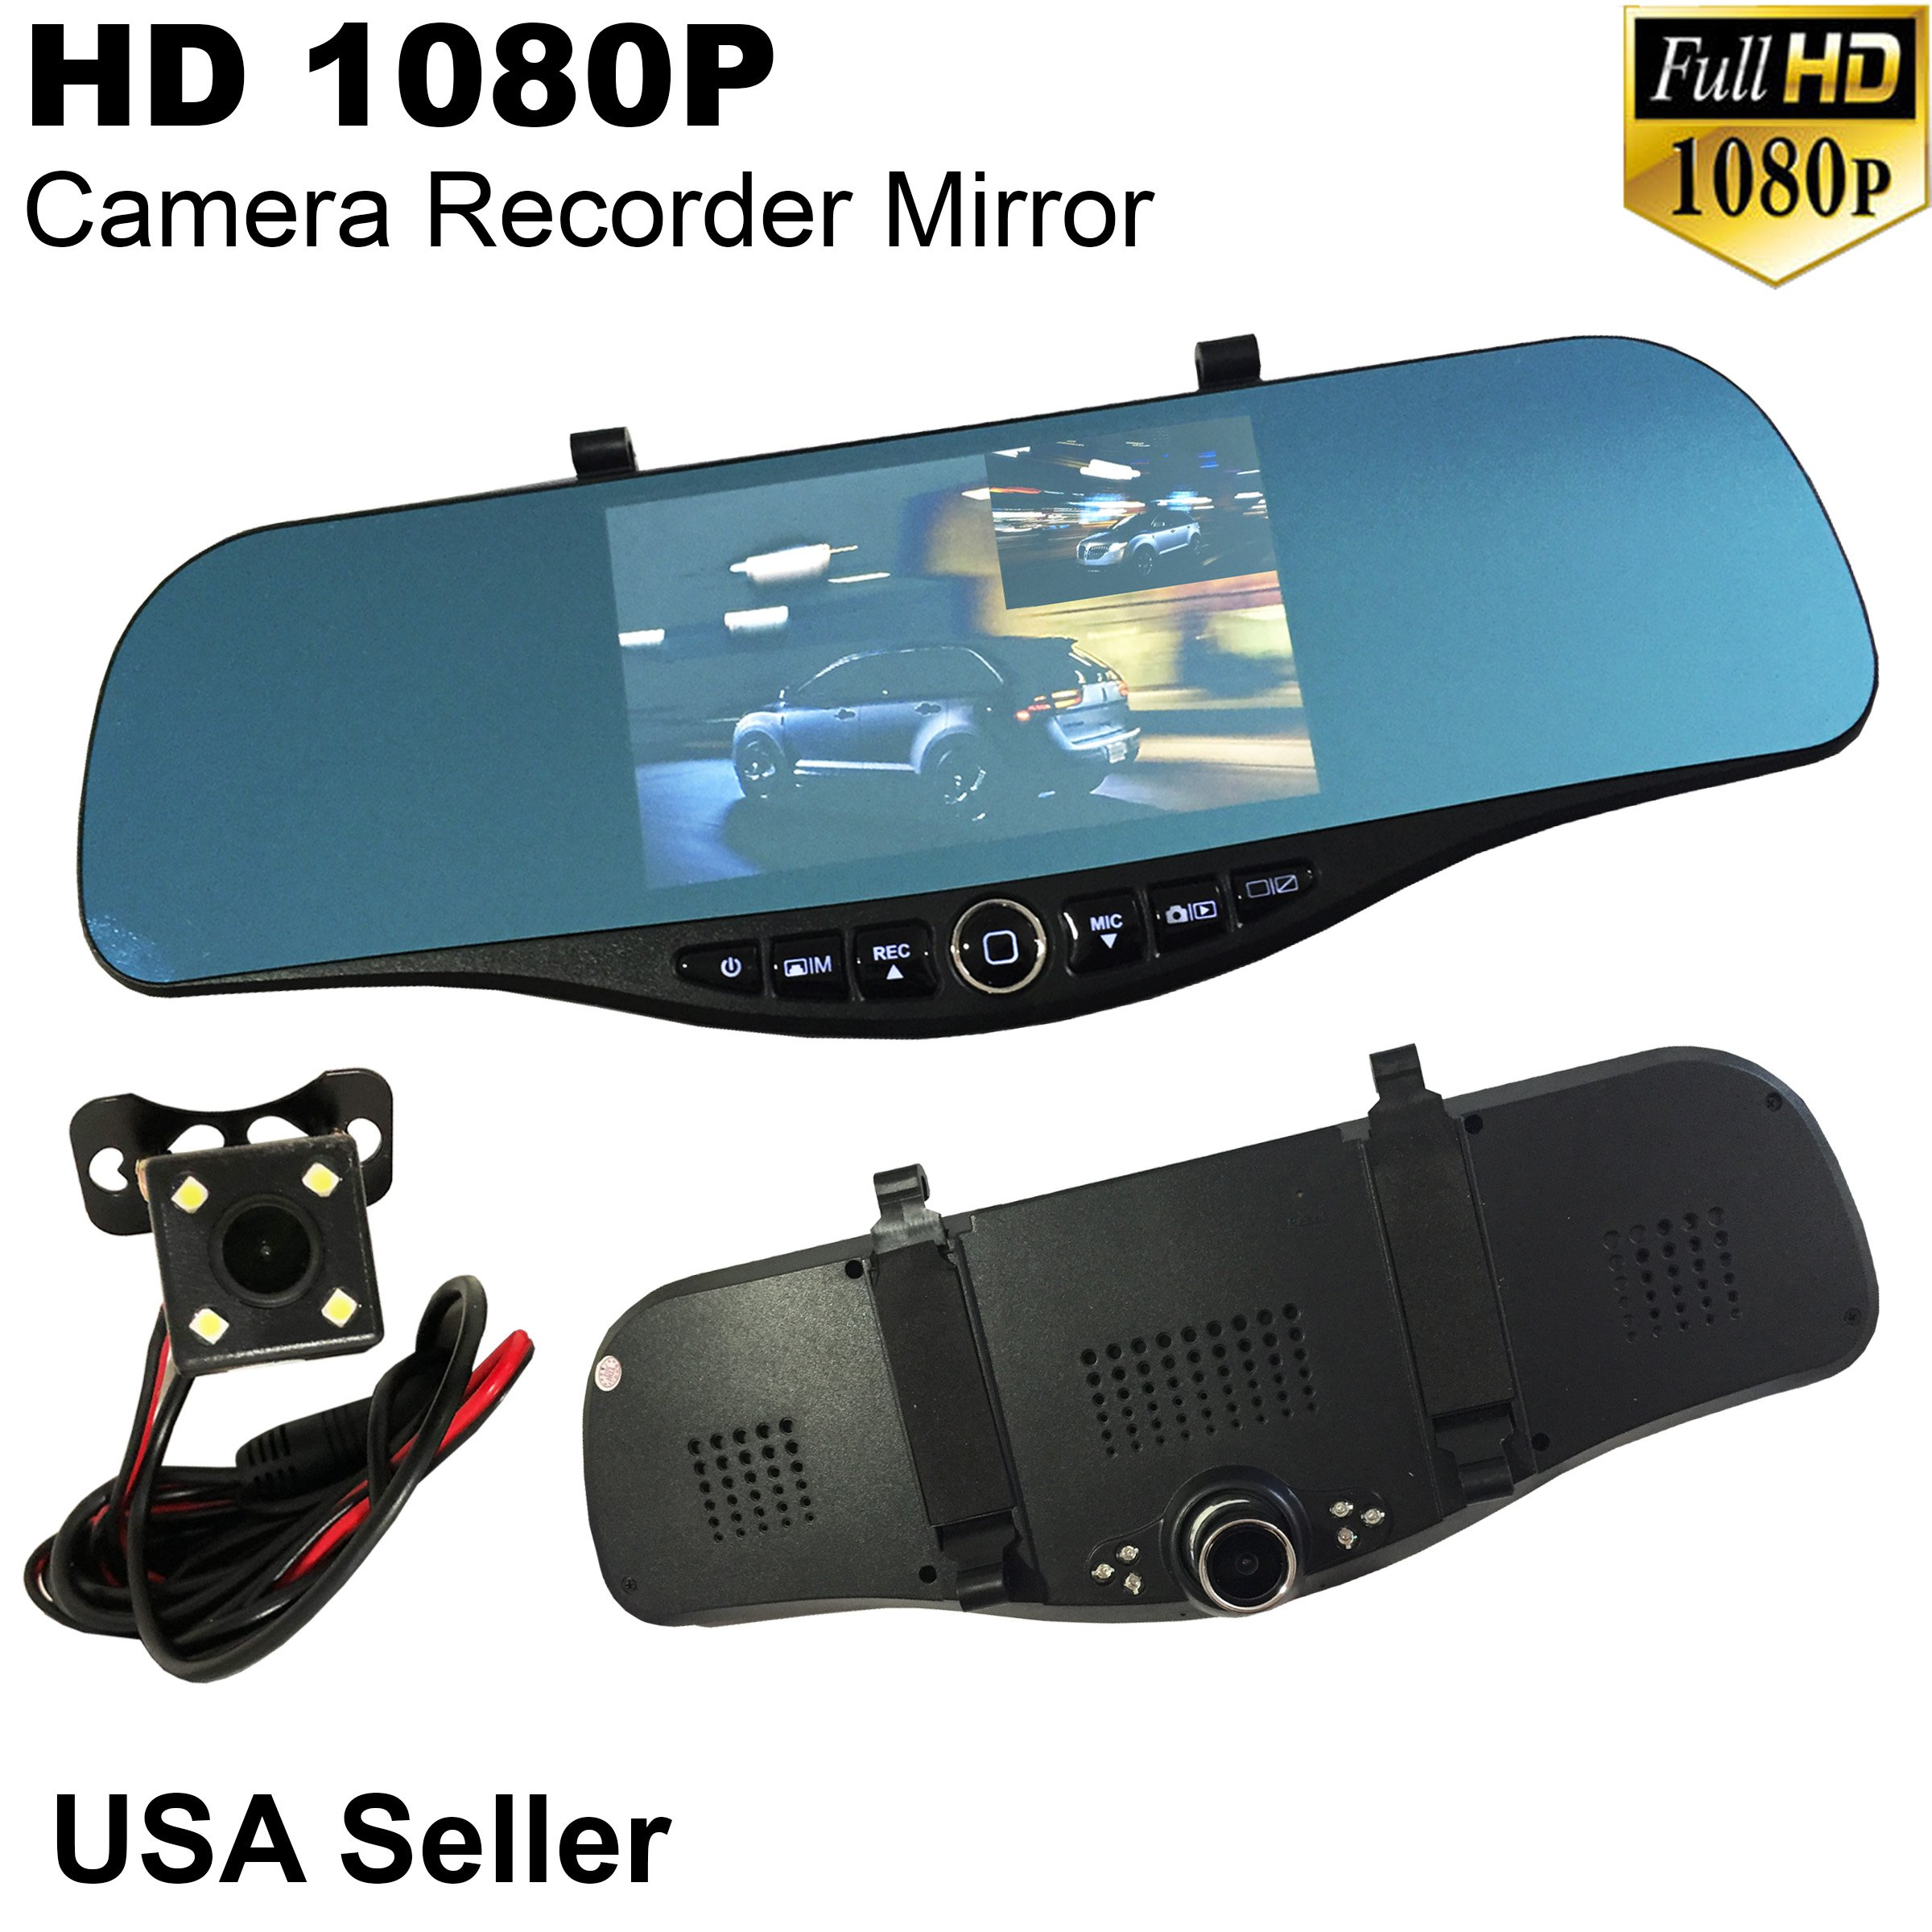 5 in Full HD 1080P Blue 300mm Car Front/Back Up Reverse Rear Camera Video Recorder Rearview G-Sensor Interior Mirror USA